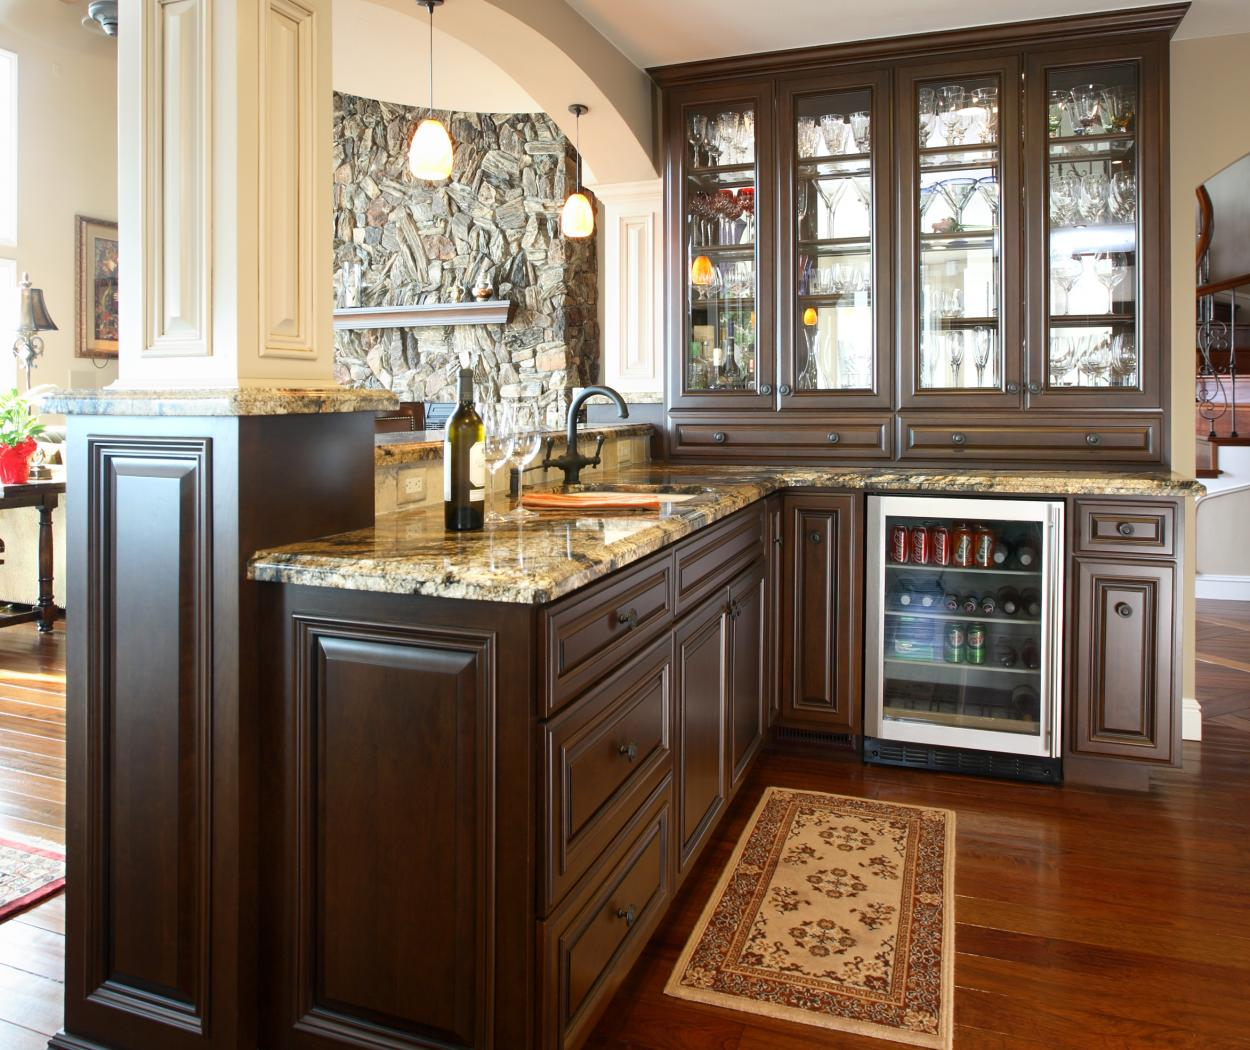 Traditional Chocolate Stained Wet Bar with a Beautiful Granite Countertop, Glass Doors and Oil Rubbed Bronze Hardware